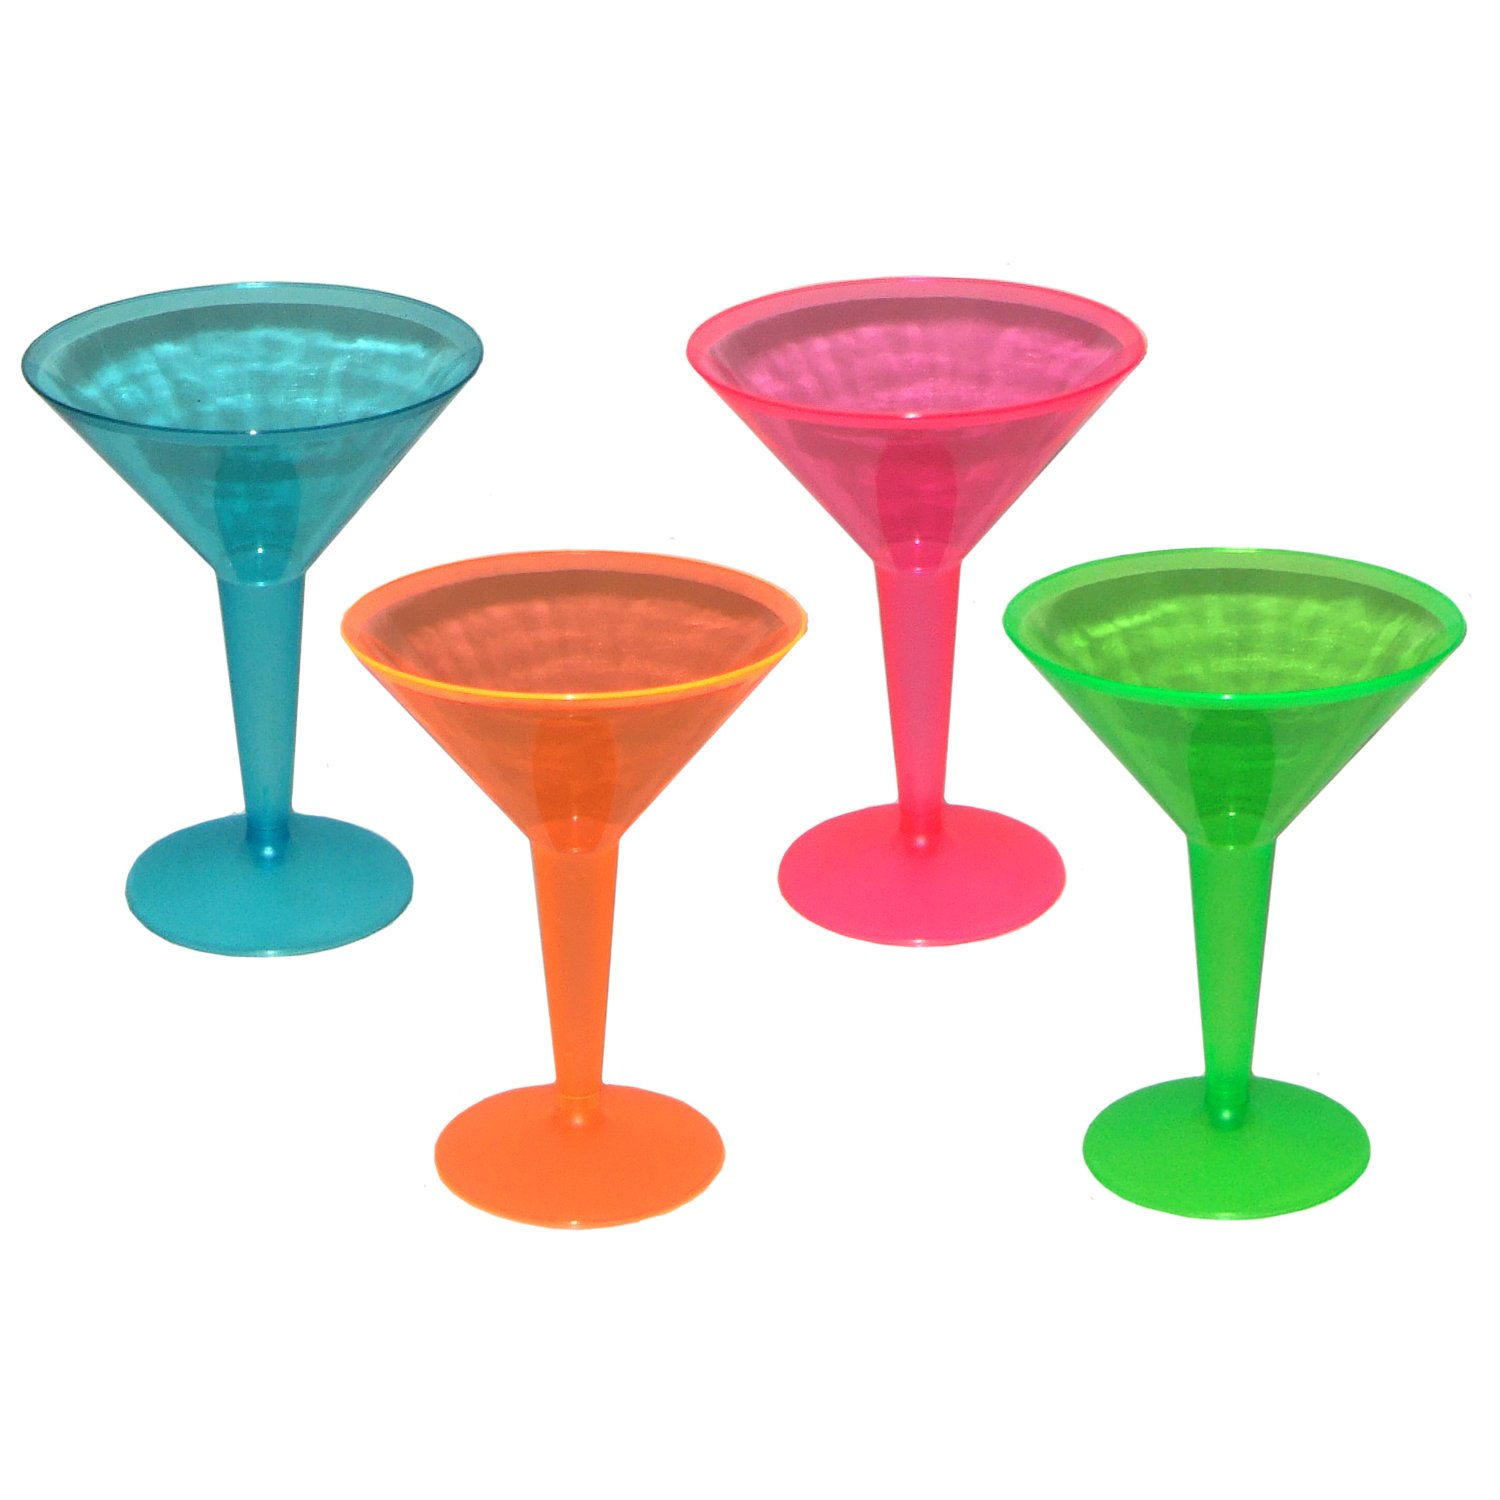 Party Essentials Brights Plastic 2-Piece Martini Glass, 8-Ounce Capacity, Assorted Neon Pink/Green/Blue/Orange, For Martinis, Appetizers, Mash Potatoes, Veggies Dip Stations, Bar & More  (Case of 144)